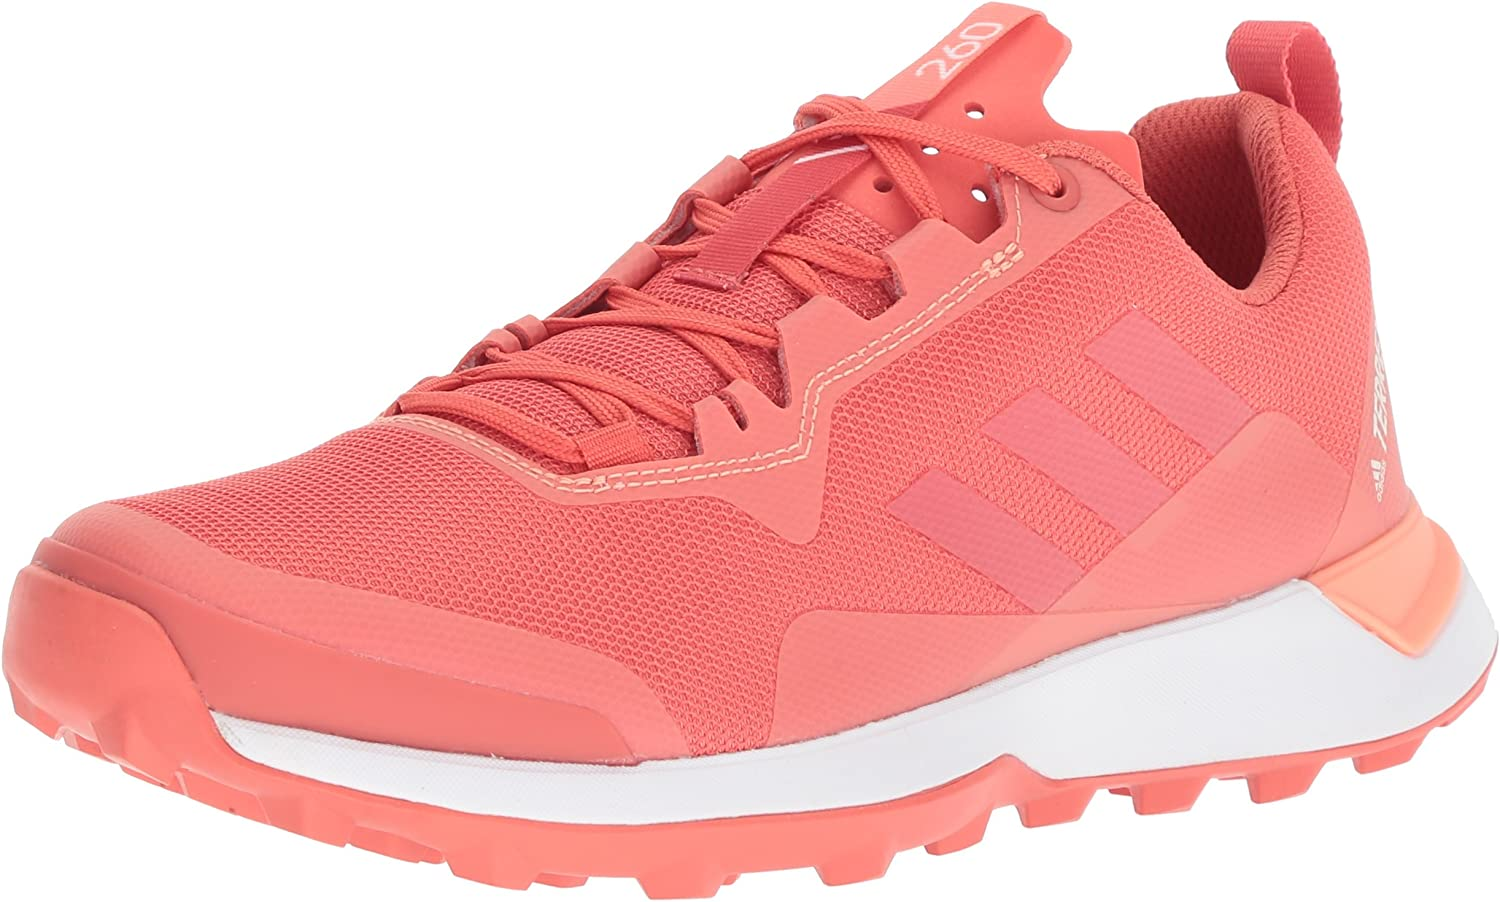 Adidas outdoor Womens Terrex CMTK W Walking shoes